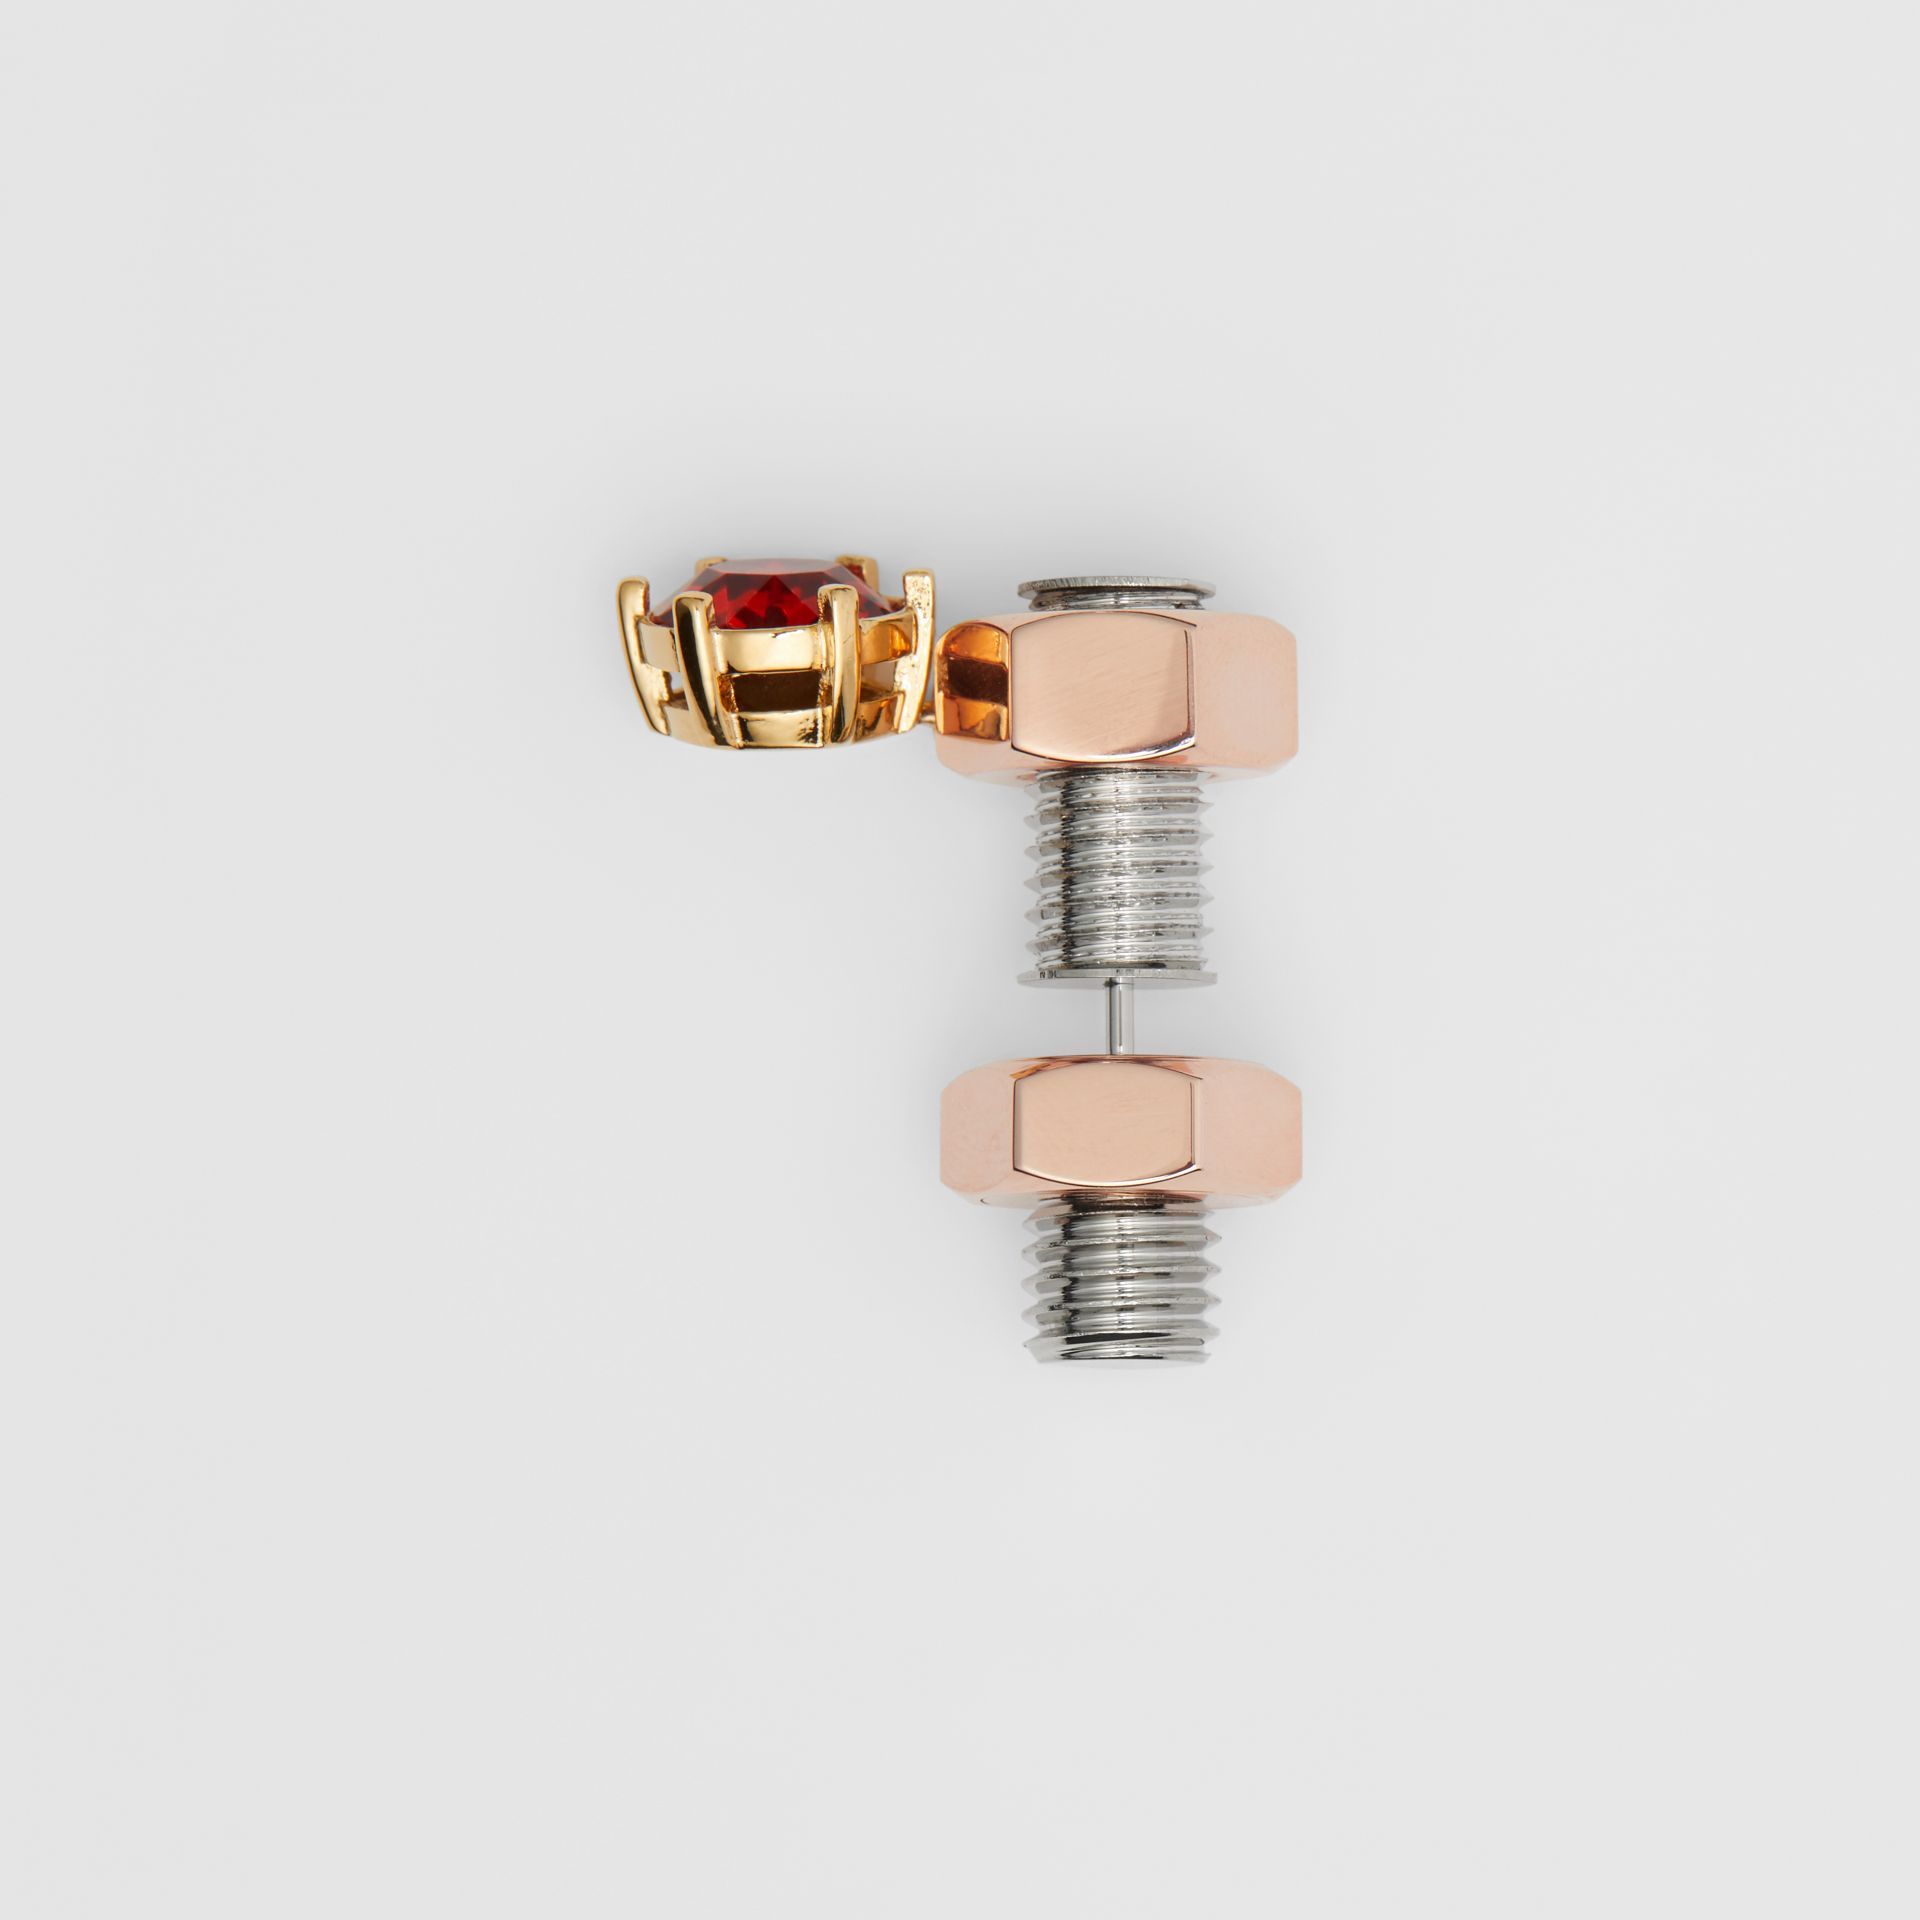 Crystal Charm Rose Gold-plated Nut and Bolt Earrings in Gold/palladium - Women | Burberry - gallery image 3